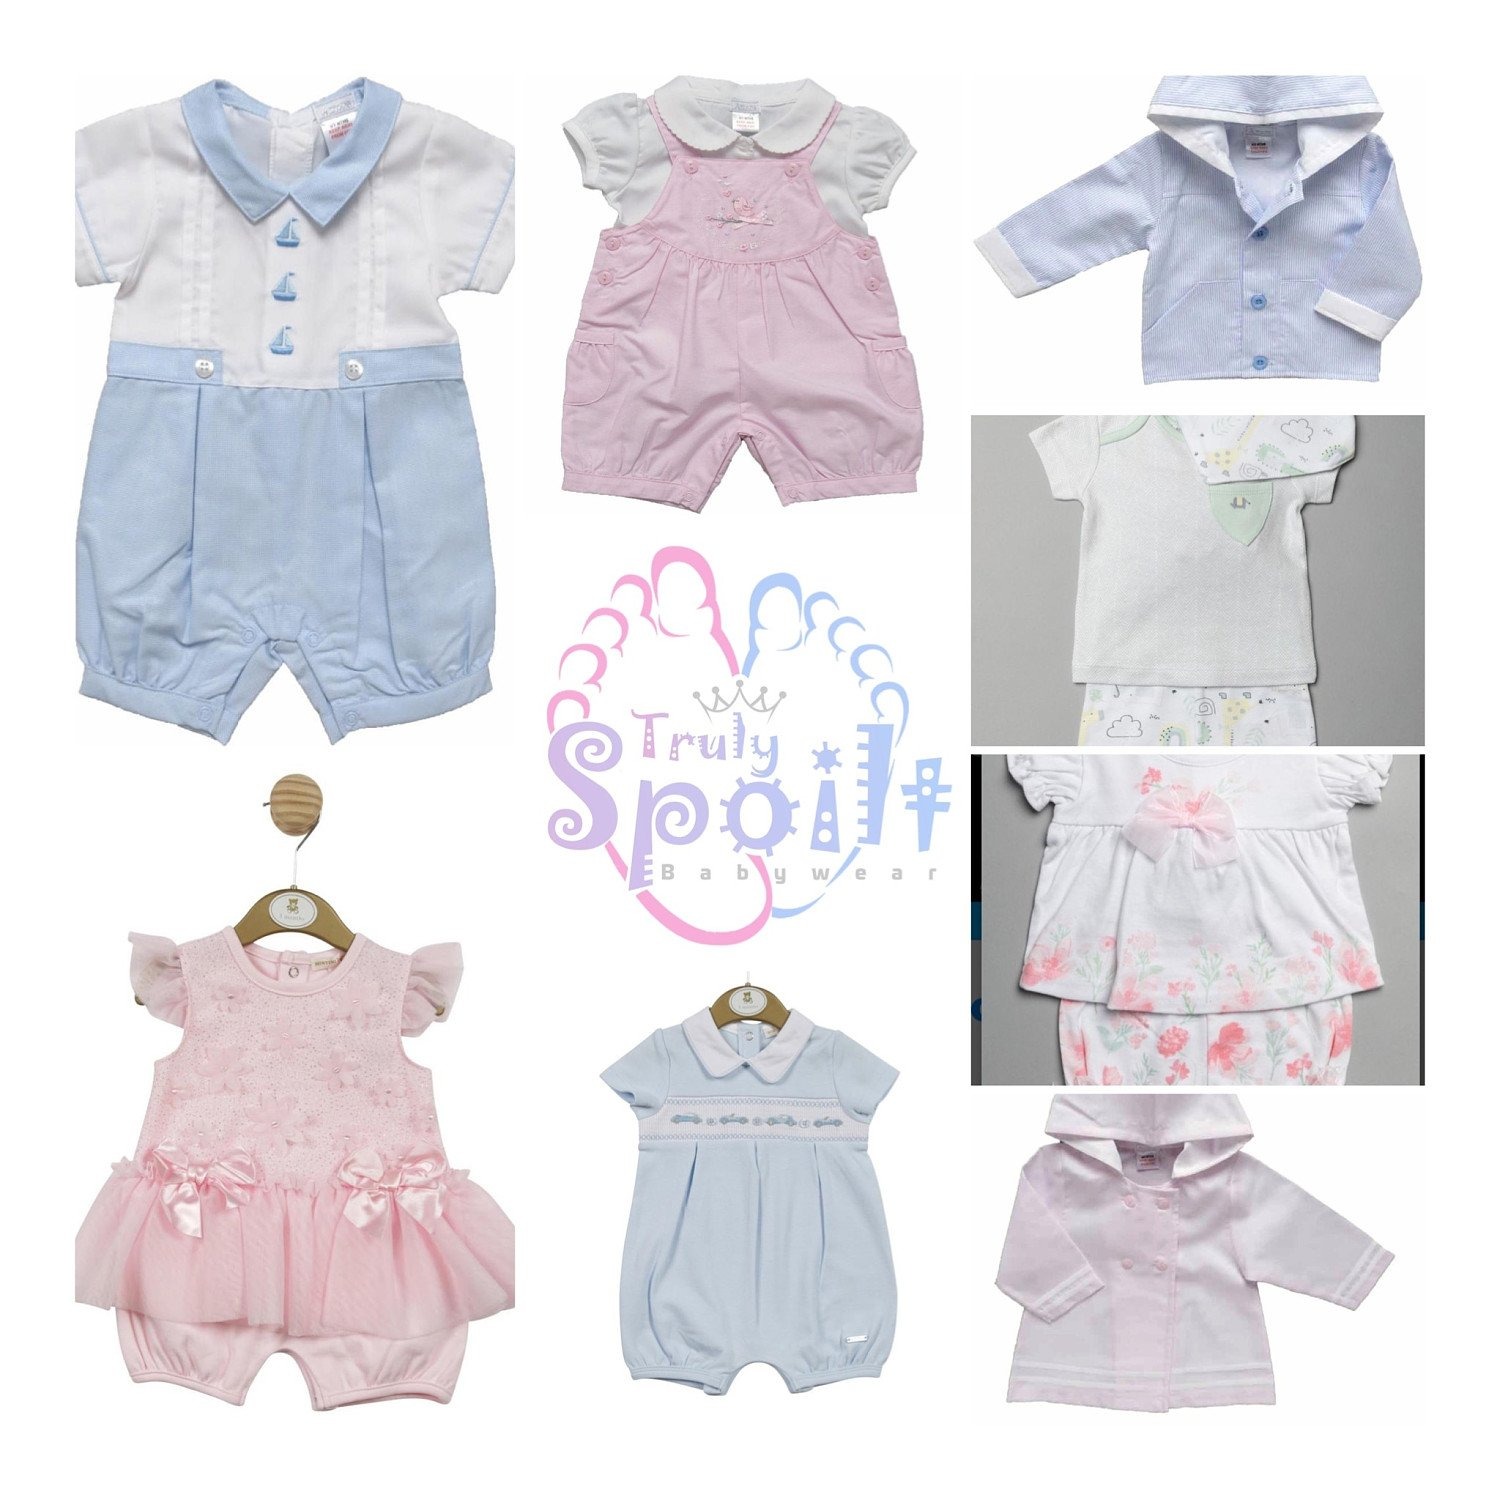 Many items in stock